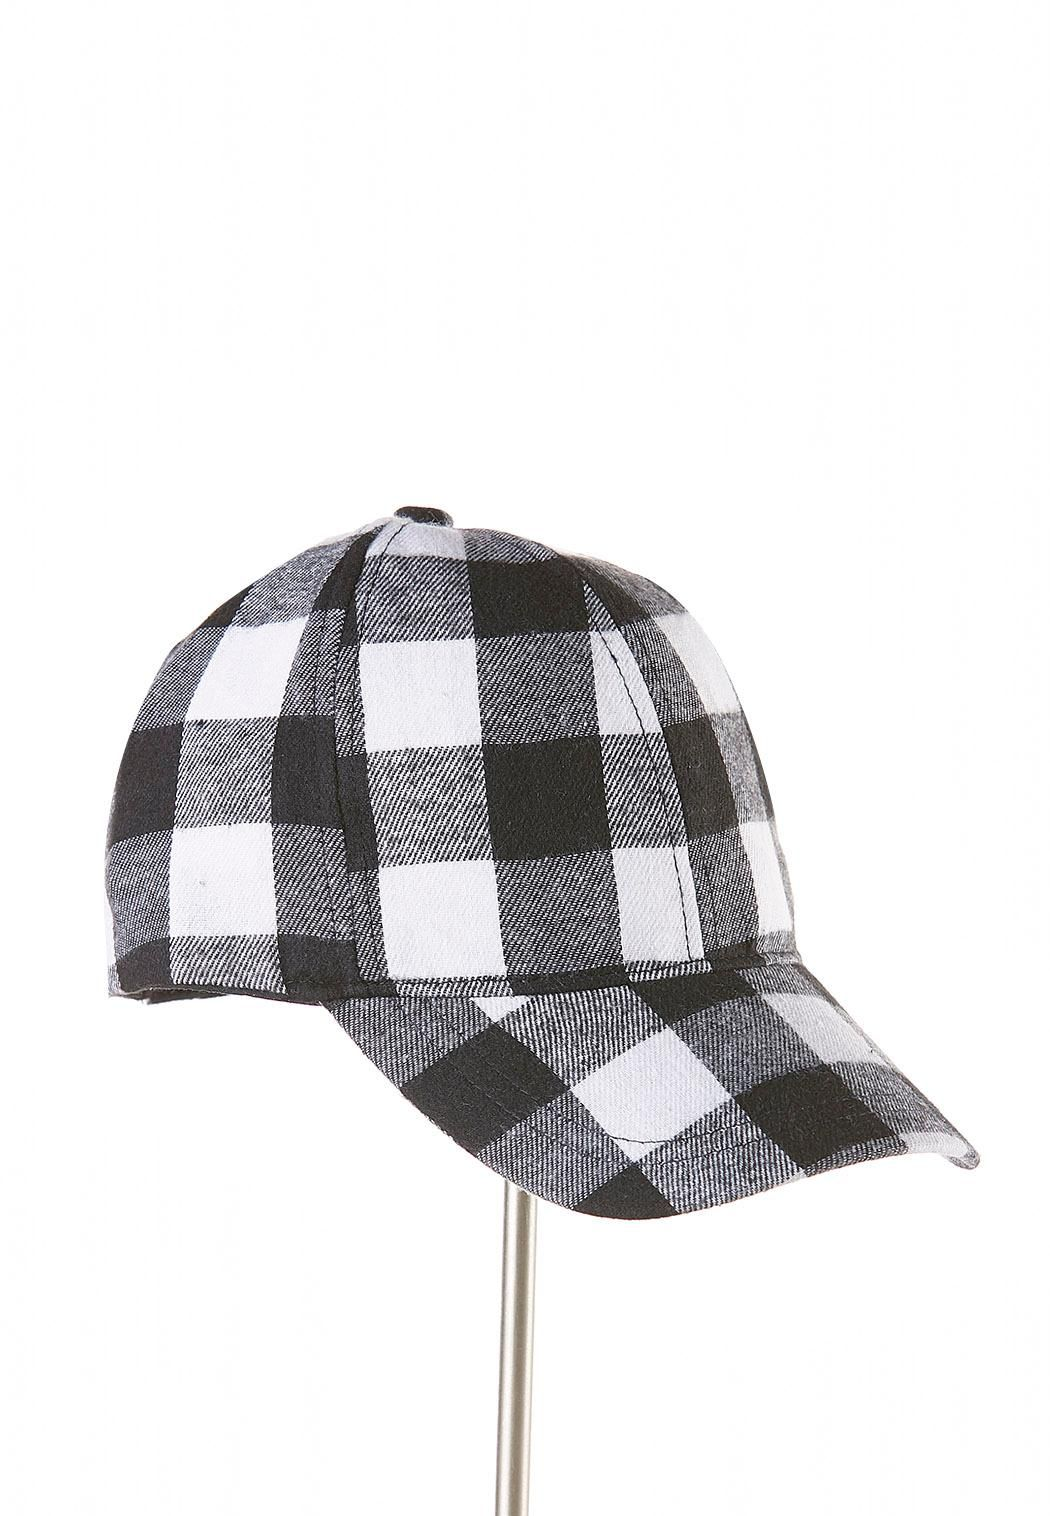 be3be331 Buffalo Plaid Baseball Hat Hats & Hair Cato Fashions | Closet style ...